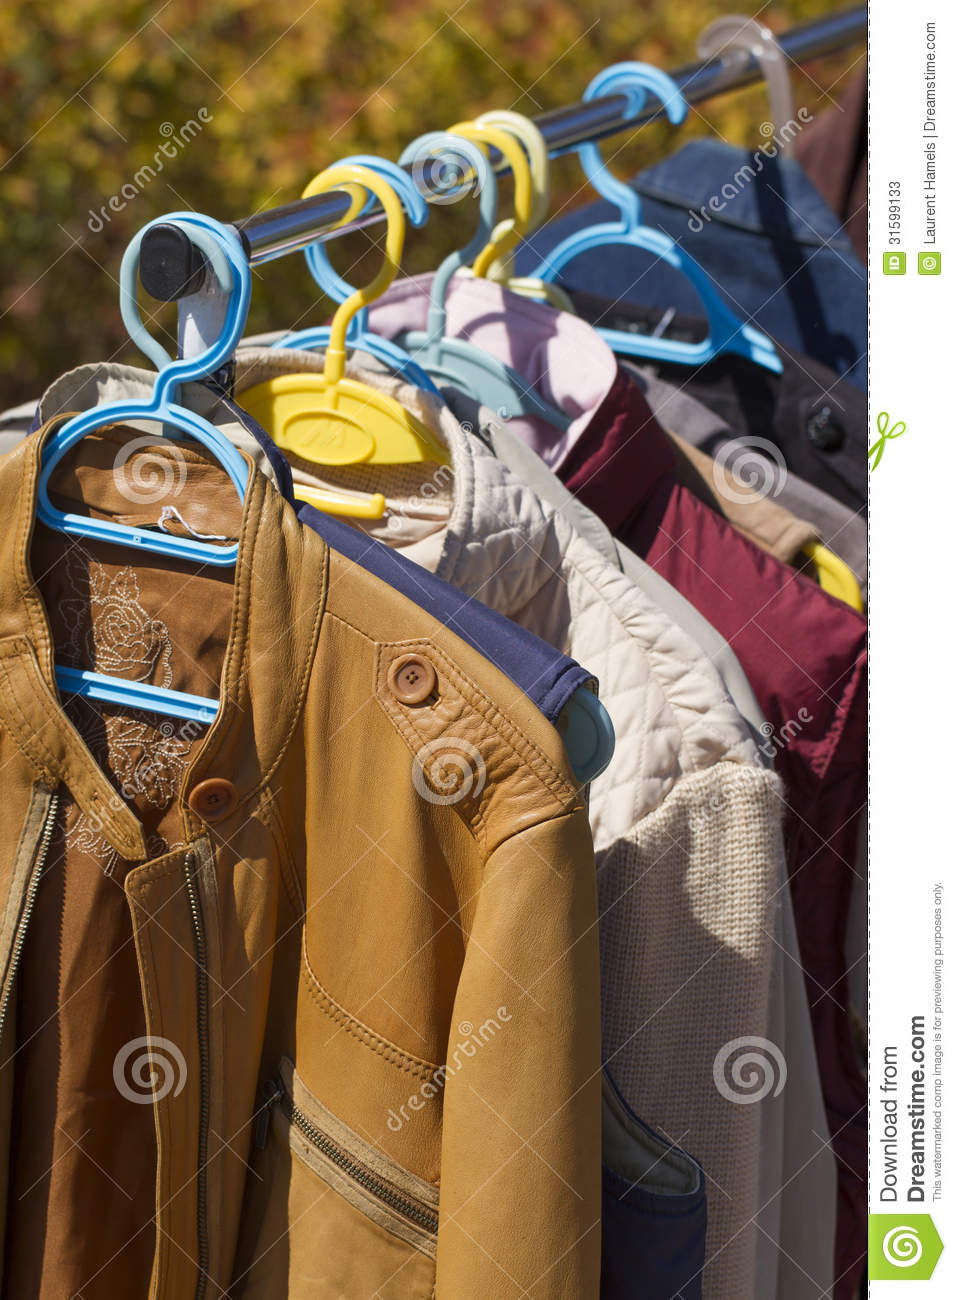 Clothes And Leather Jacket Displayed At Garage Sale Stock